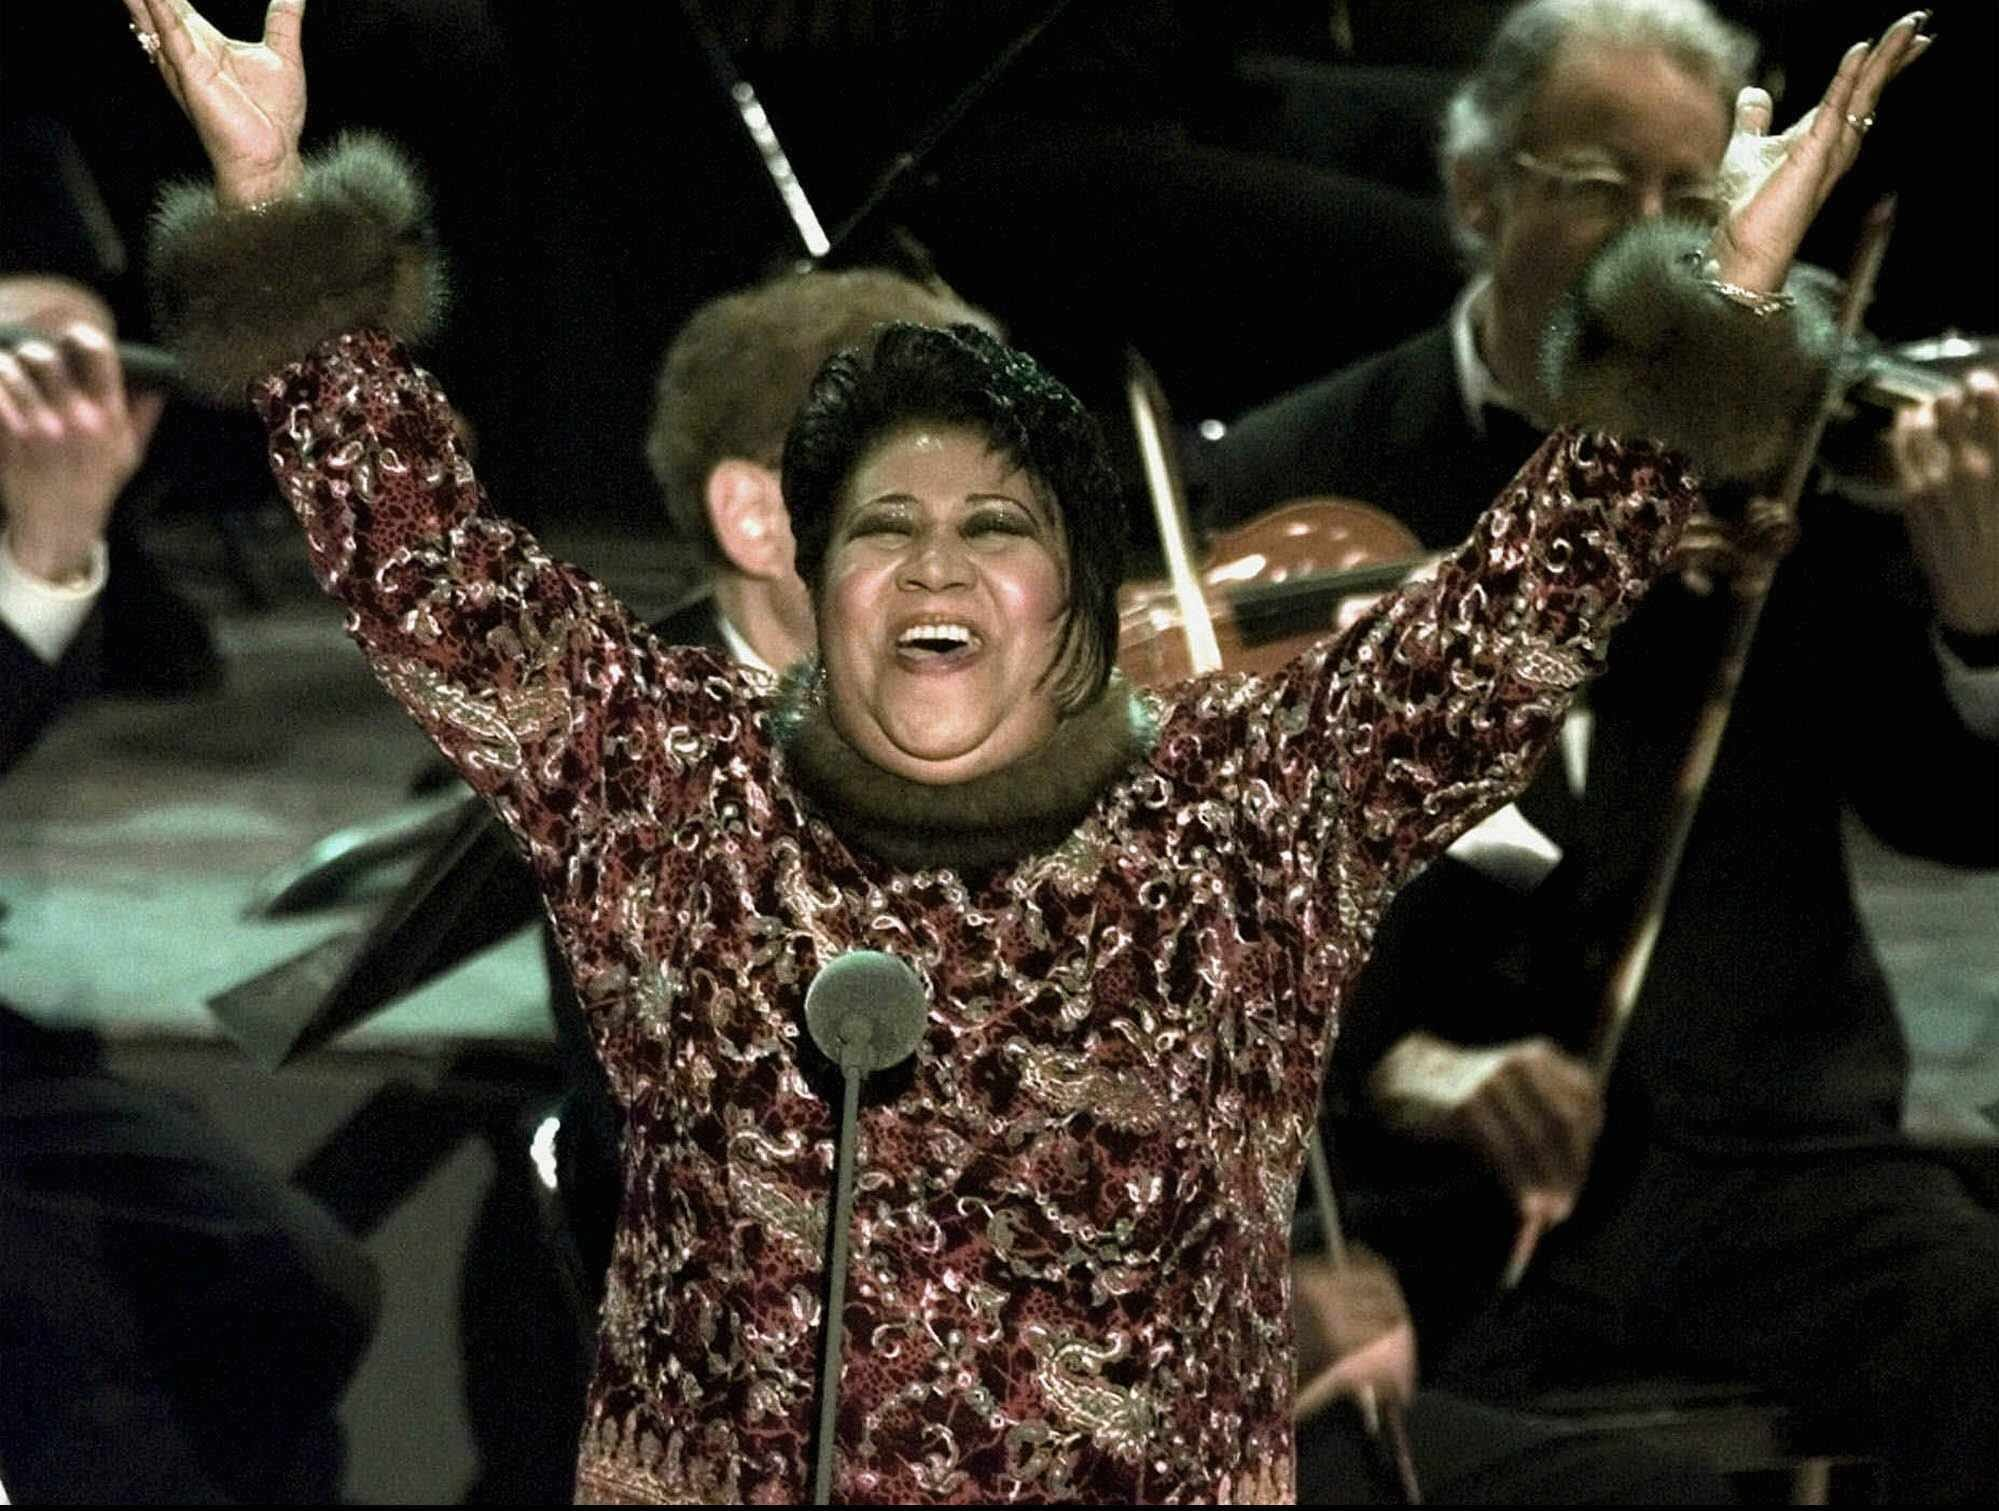 """Aretha Franklin, performing in this Feb. 25, 1998 file photo, says she wasn't trying to prove her versatility when she filled in for Luciano Pavarotti at the Grammys this year. """"I'm sure many people were surprised, but I'm not there to prove anything,'' the queen of soul told The Associated Press on Thursday, April 9, 1998. (AP Photo/Mark Lennihan)"""